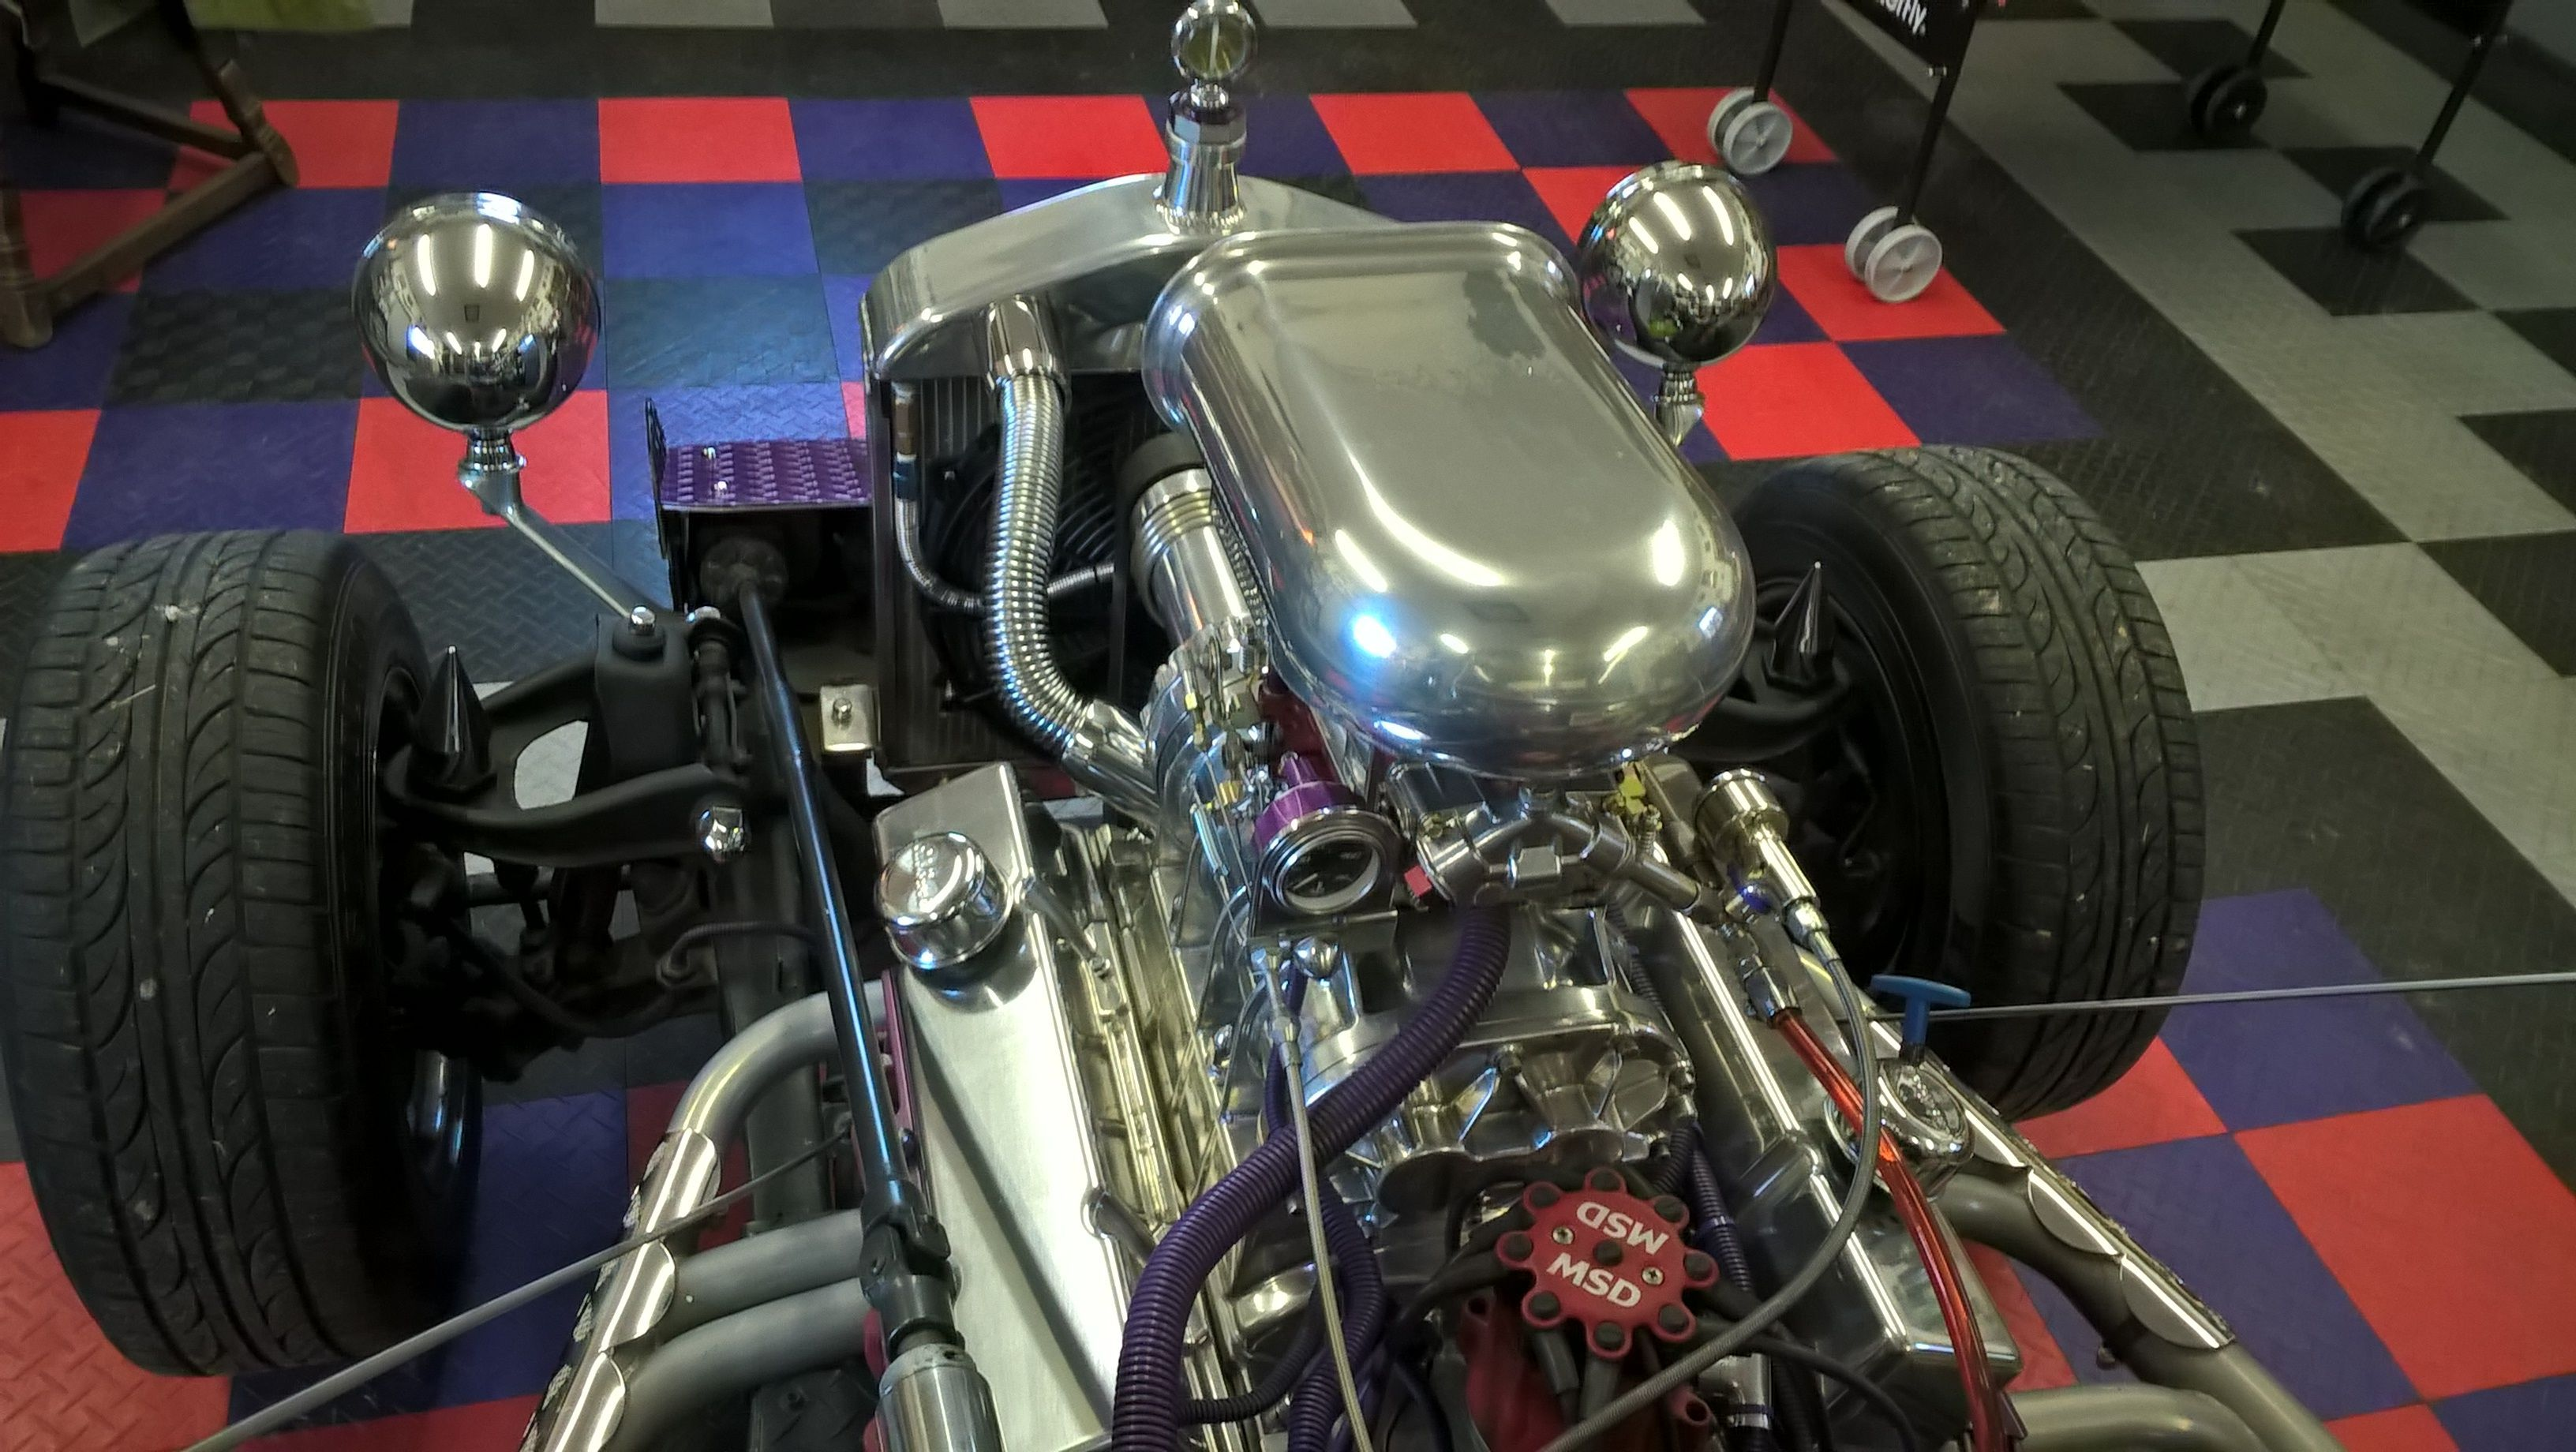 383ci stroker crate engine small block gm style longblock blueprint engines 383ci stroker crate engine small block gm style longblock aluminum heads roller cam power adder ready malvernweather Choice Image